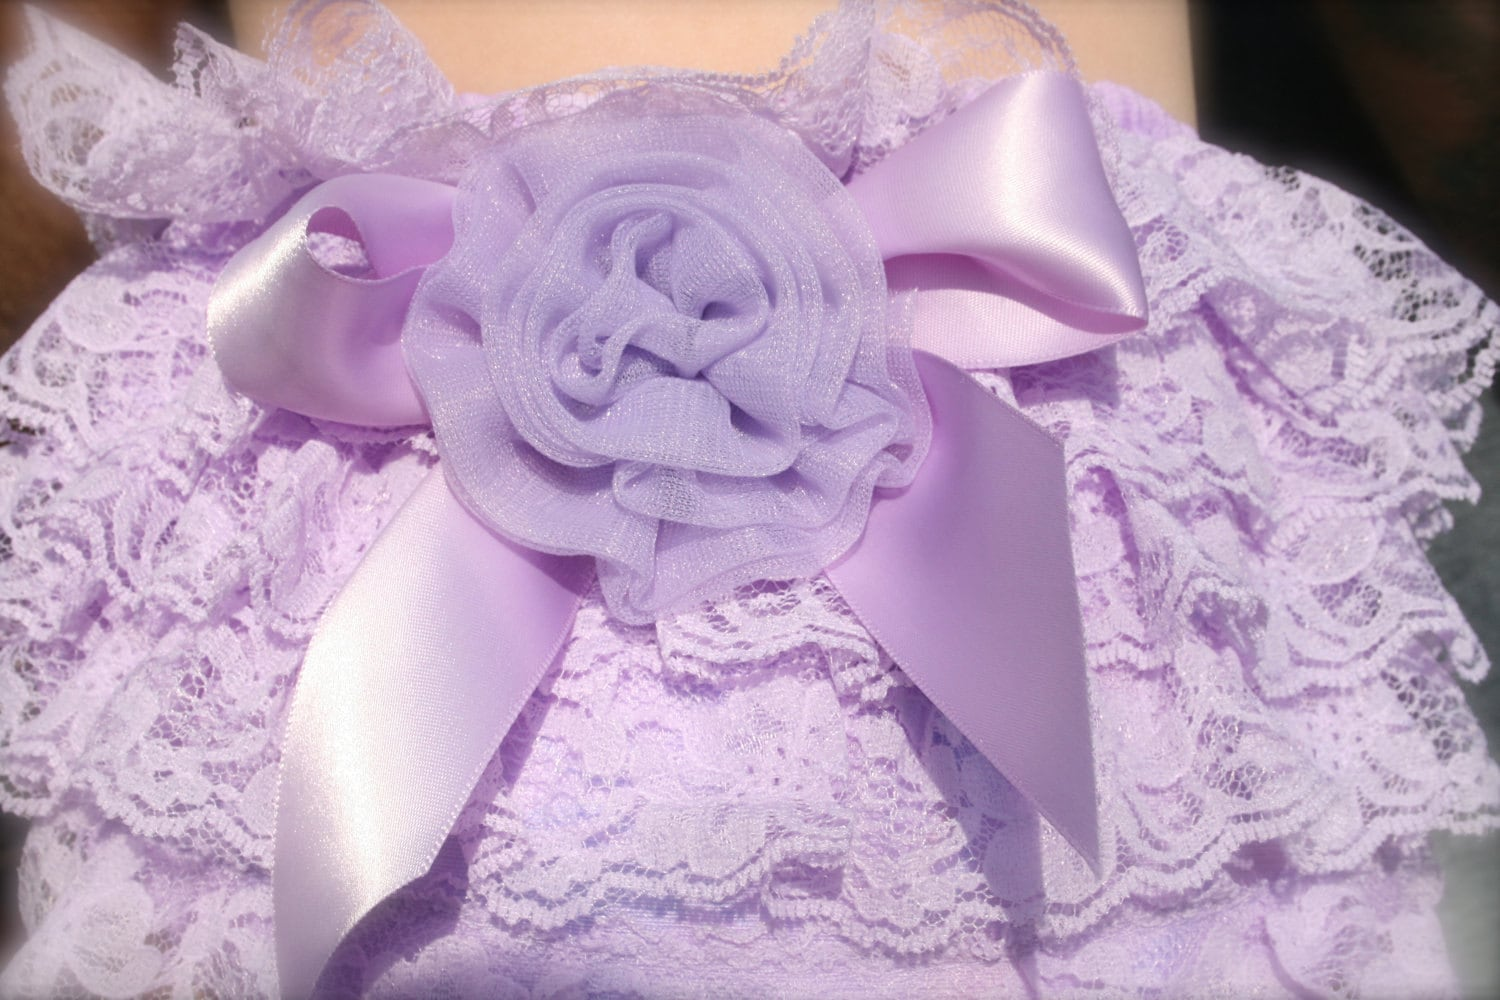 Lace Diaper Cover or Lavender Lace Panties with Bow and Chiffon Rosette